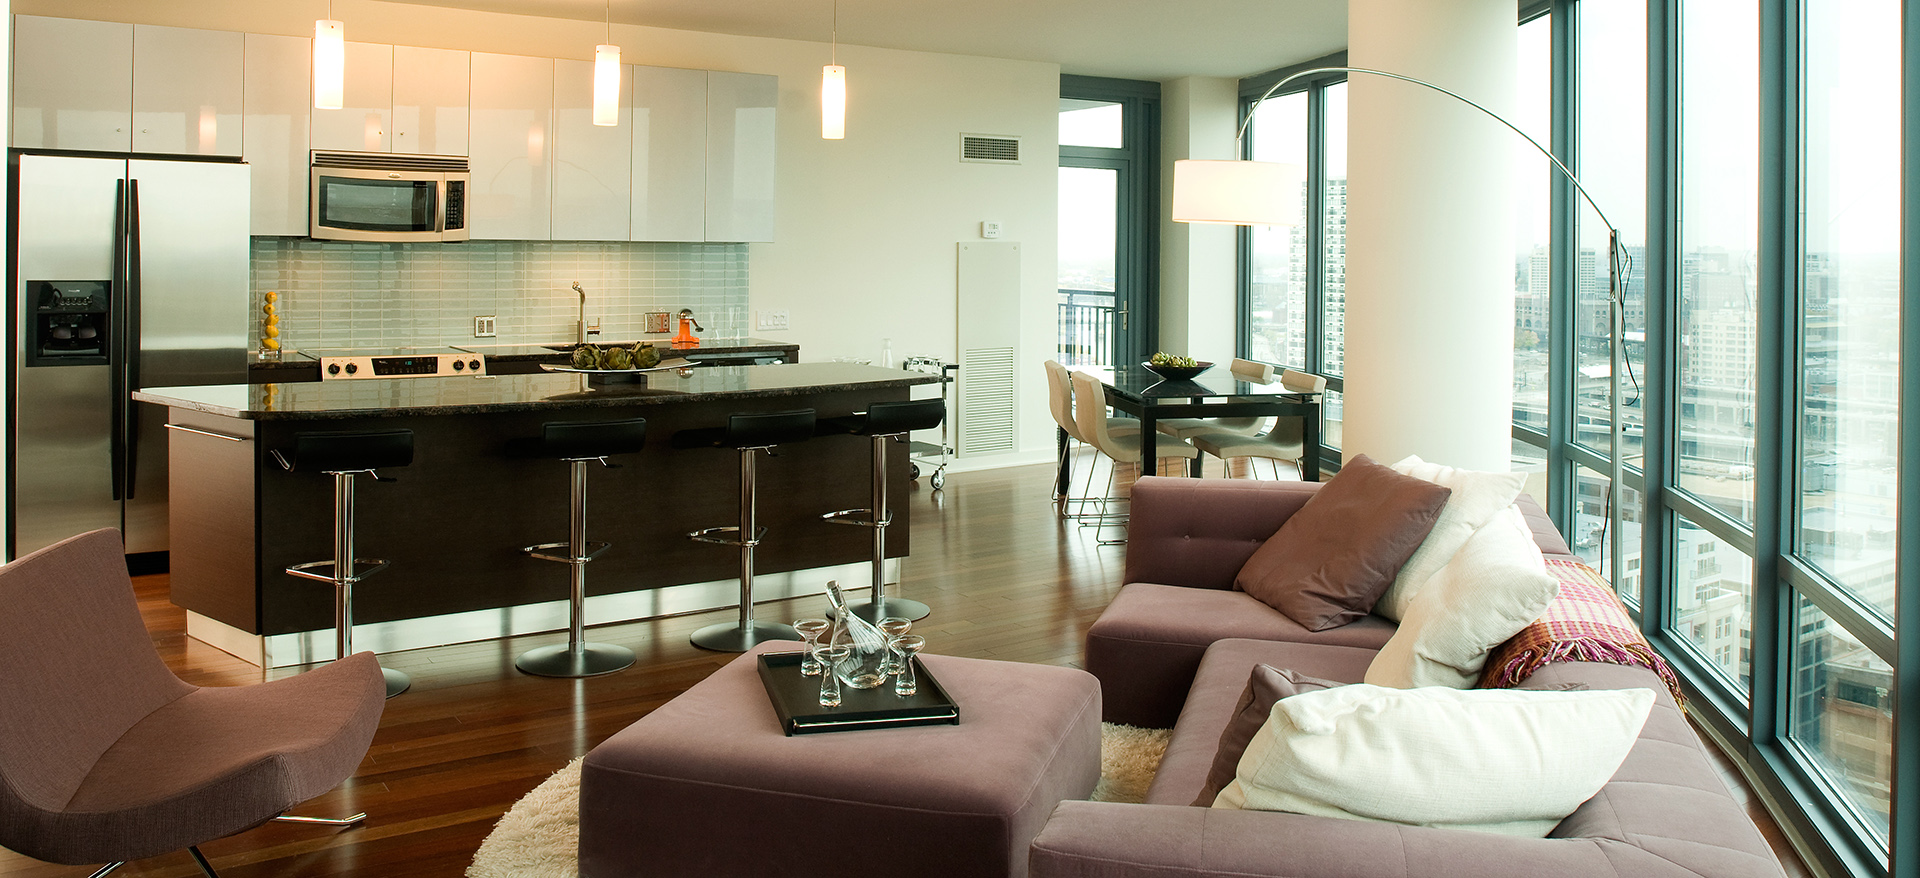 Apartment living room and kitchen with island breakfast bar